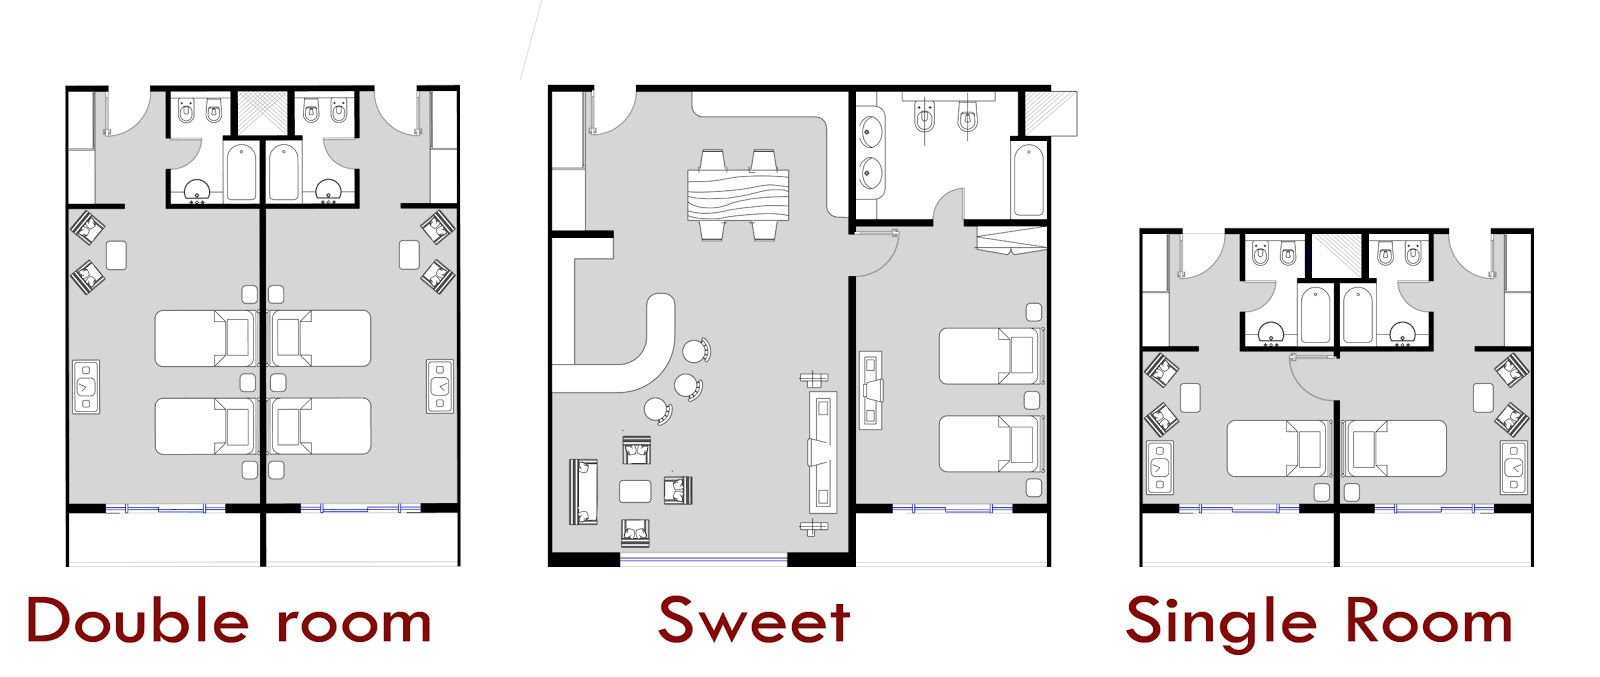 Foundation Dezin & Decor: Hotel room plans & layouts.